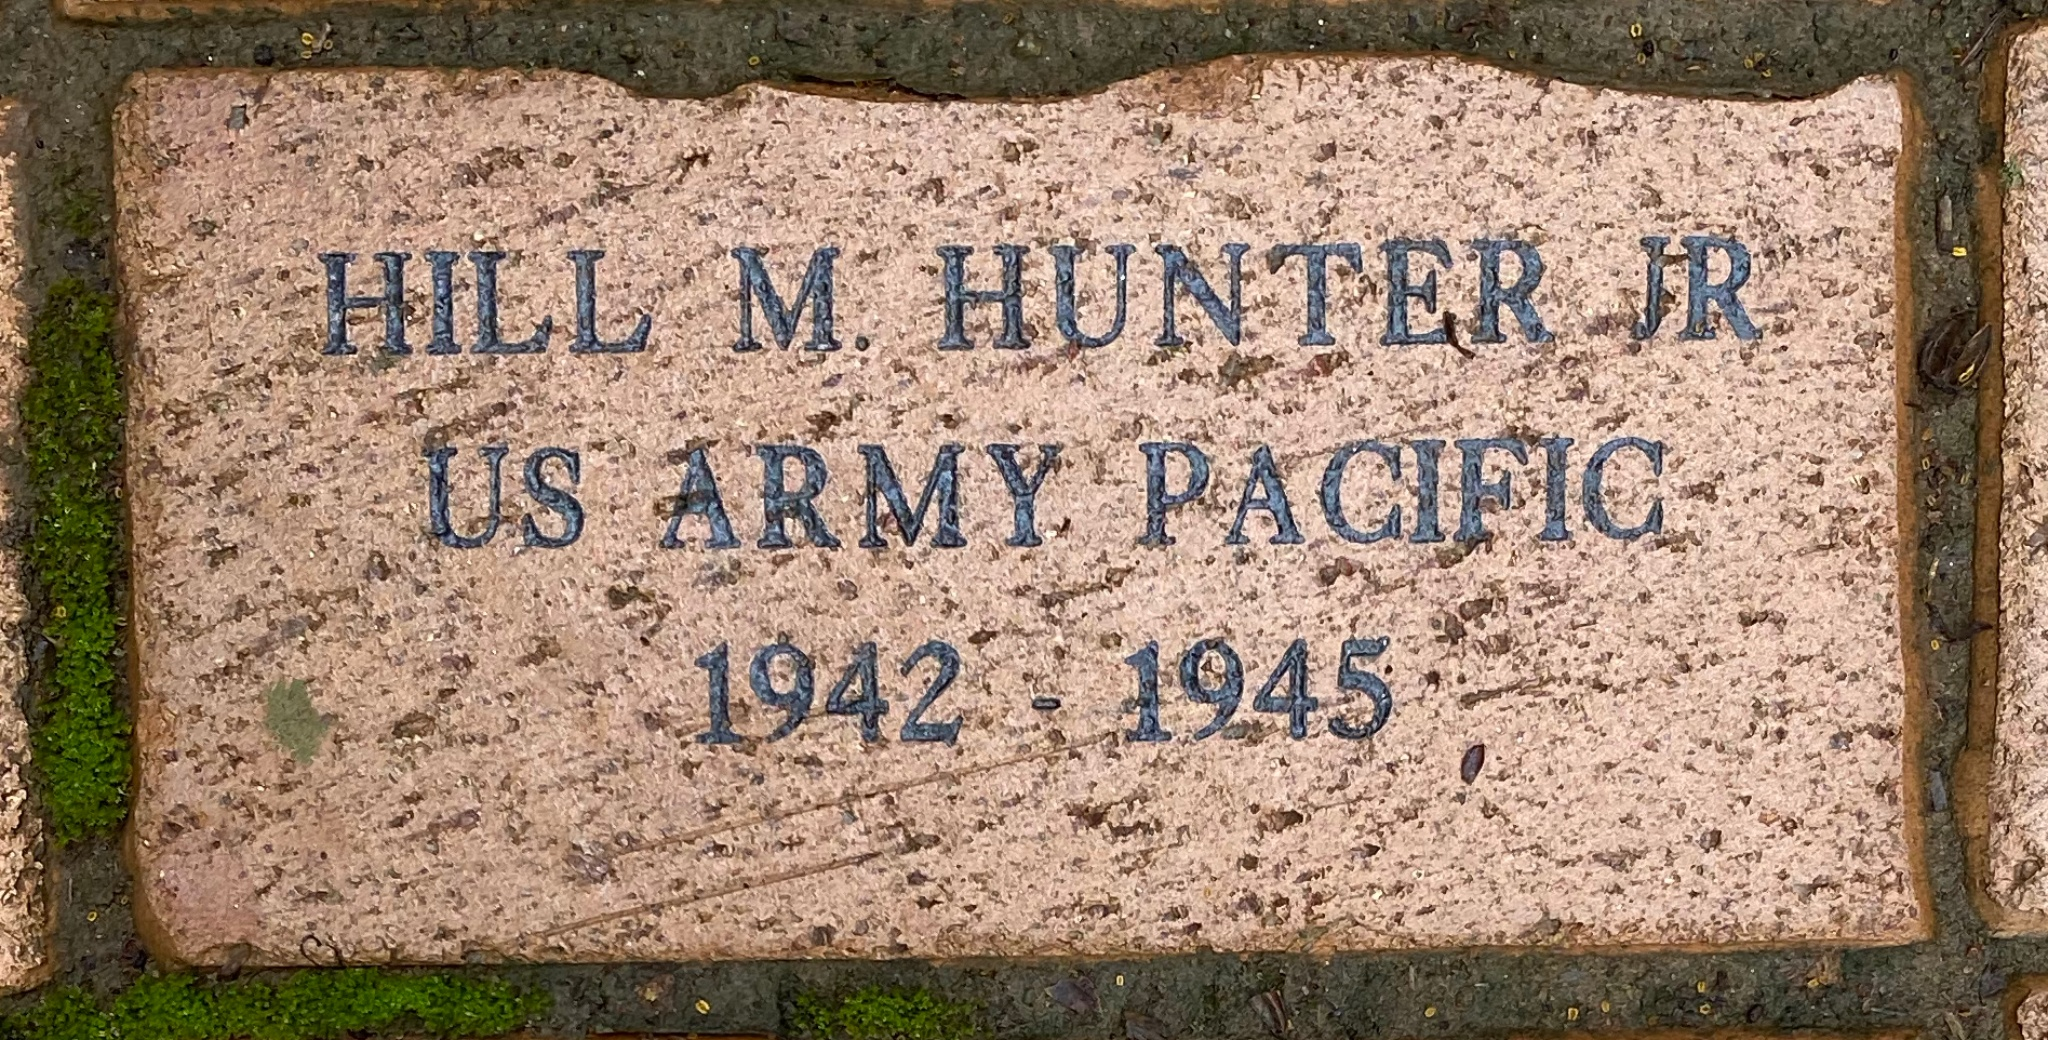 HILL M. HUNTER JR US ARMY PACIFIC 1942 – 1945